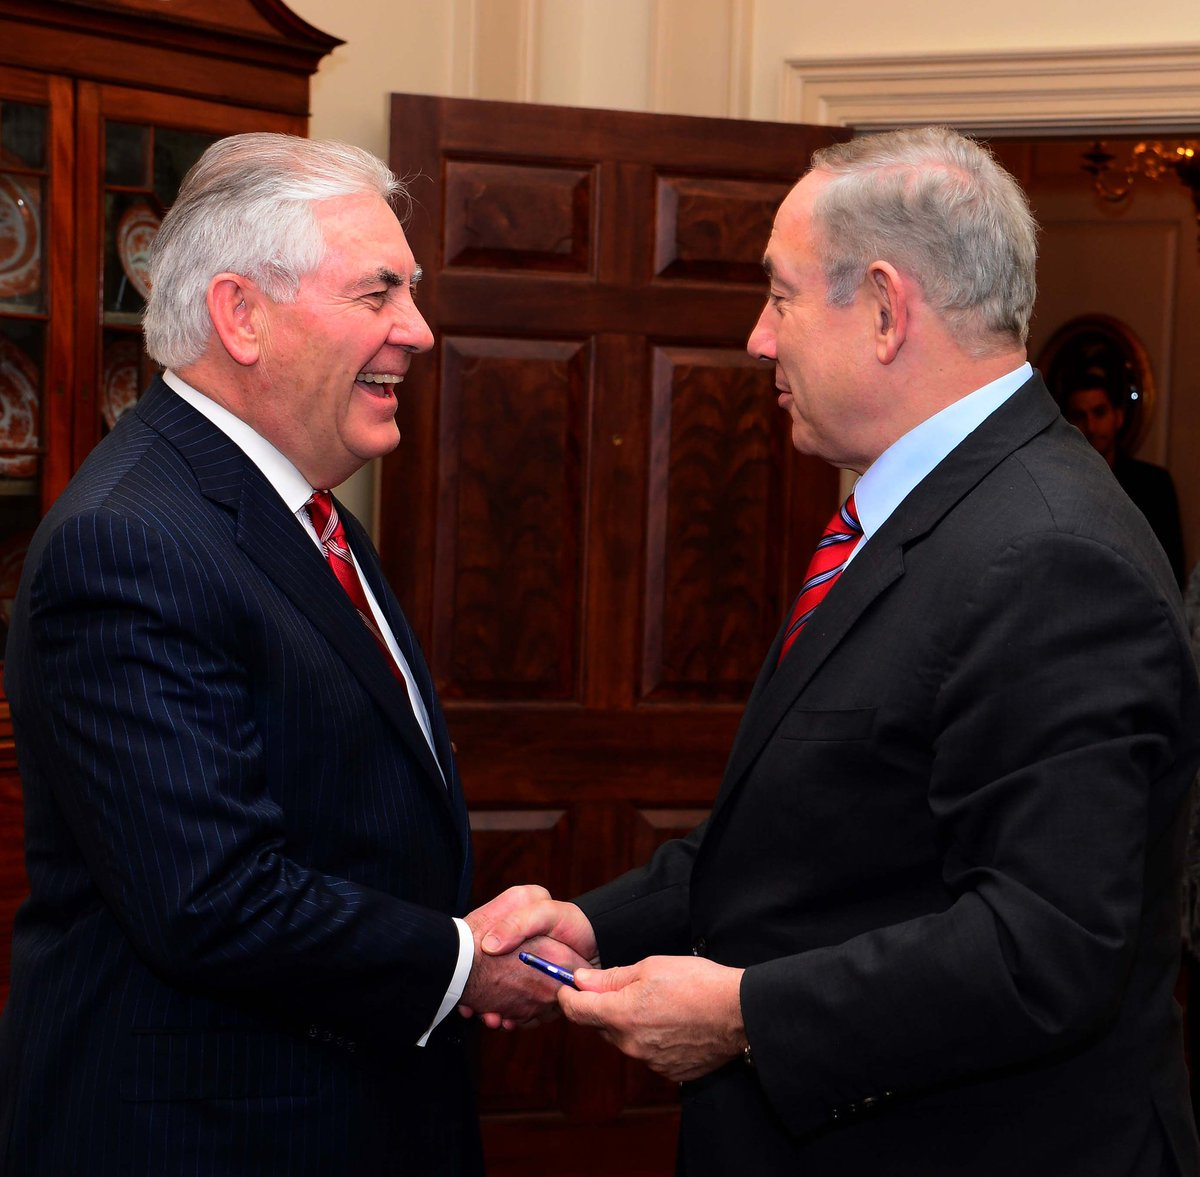 Israel&#39;s PM Netanyahu met with U.S State Secretary #Tillerson at the U.S. Department of State in Washington, D.C <br>http://pic.twitter.com/H67E25USRS